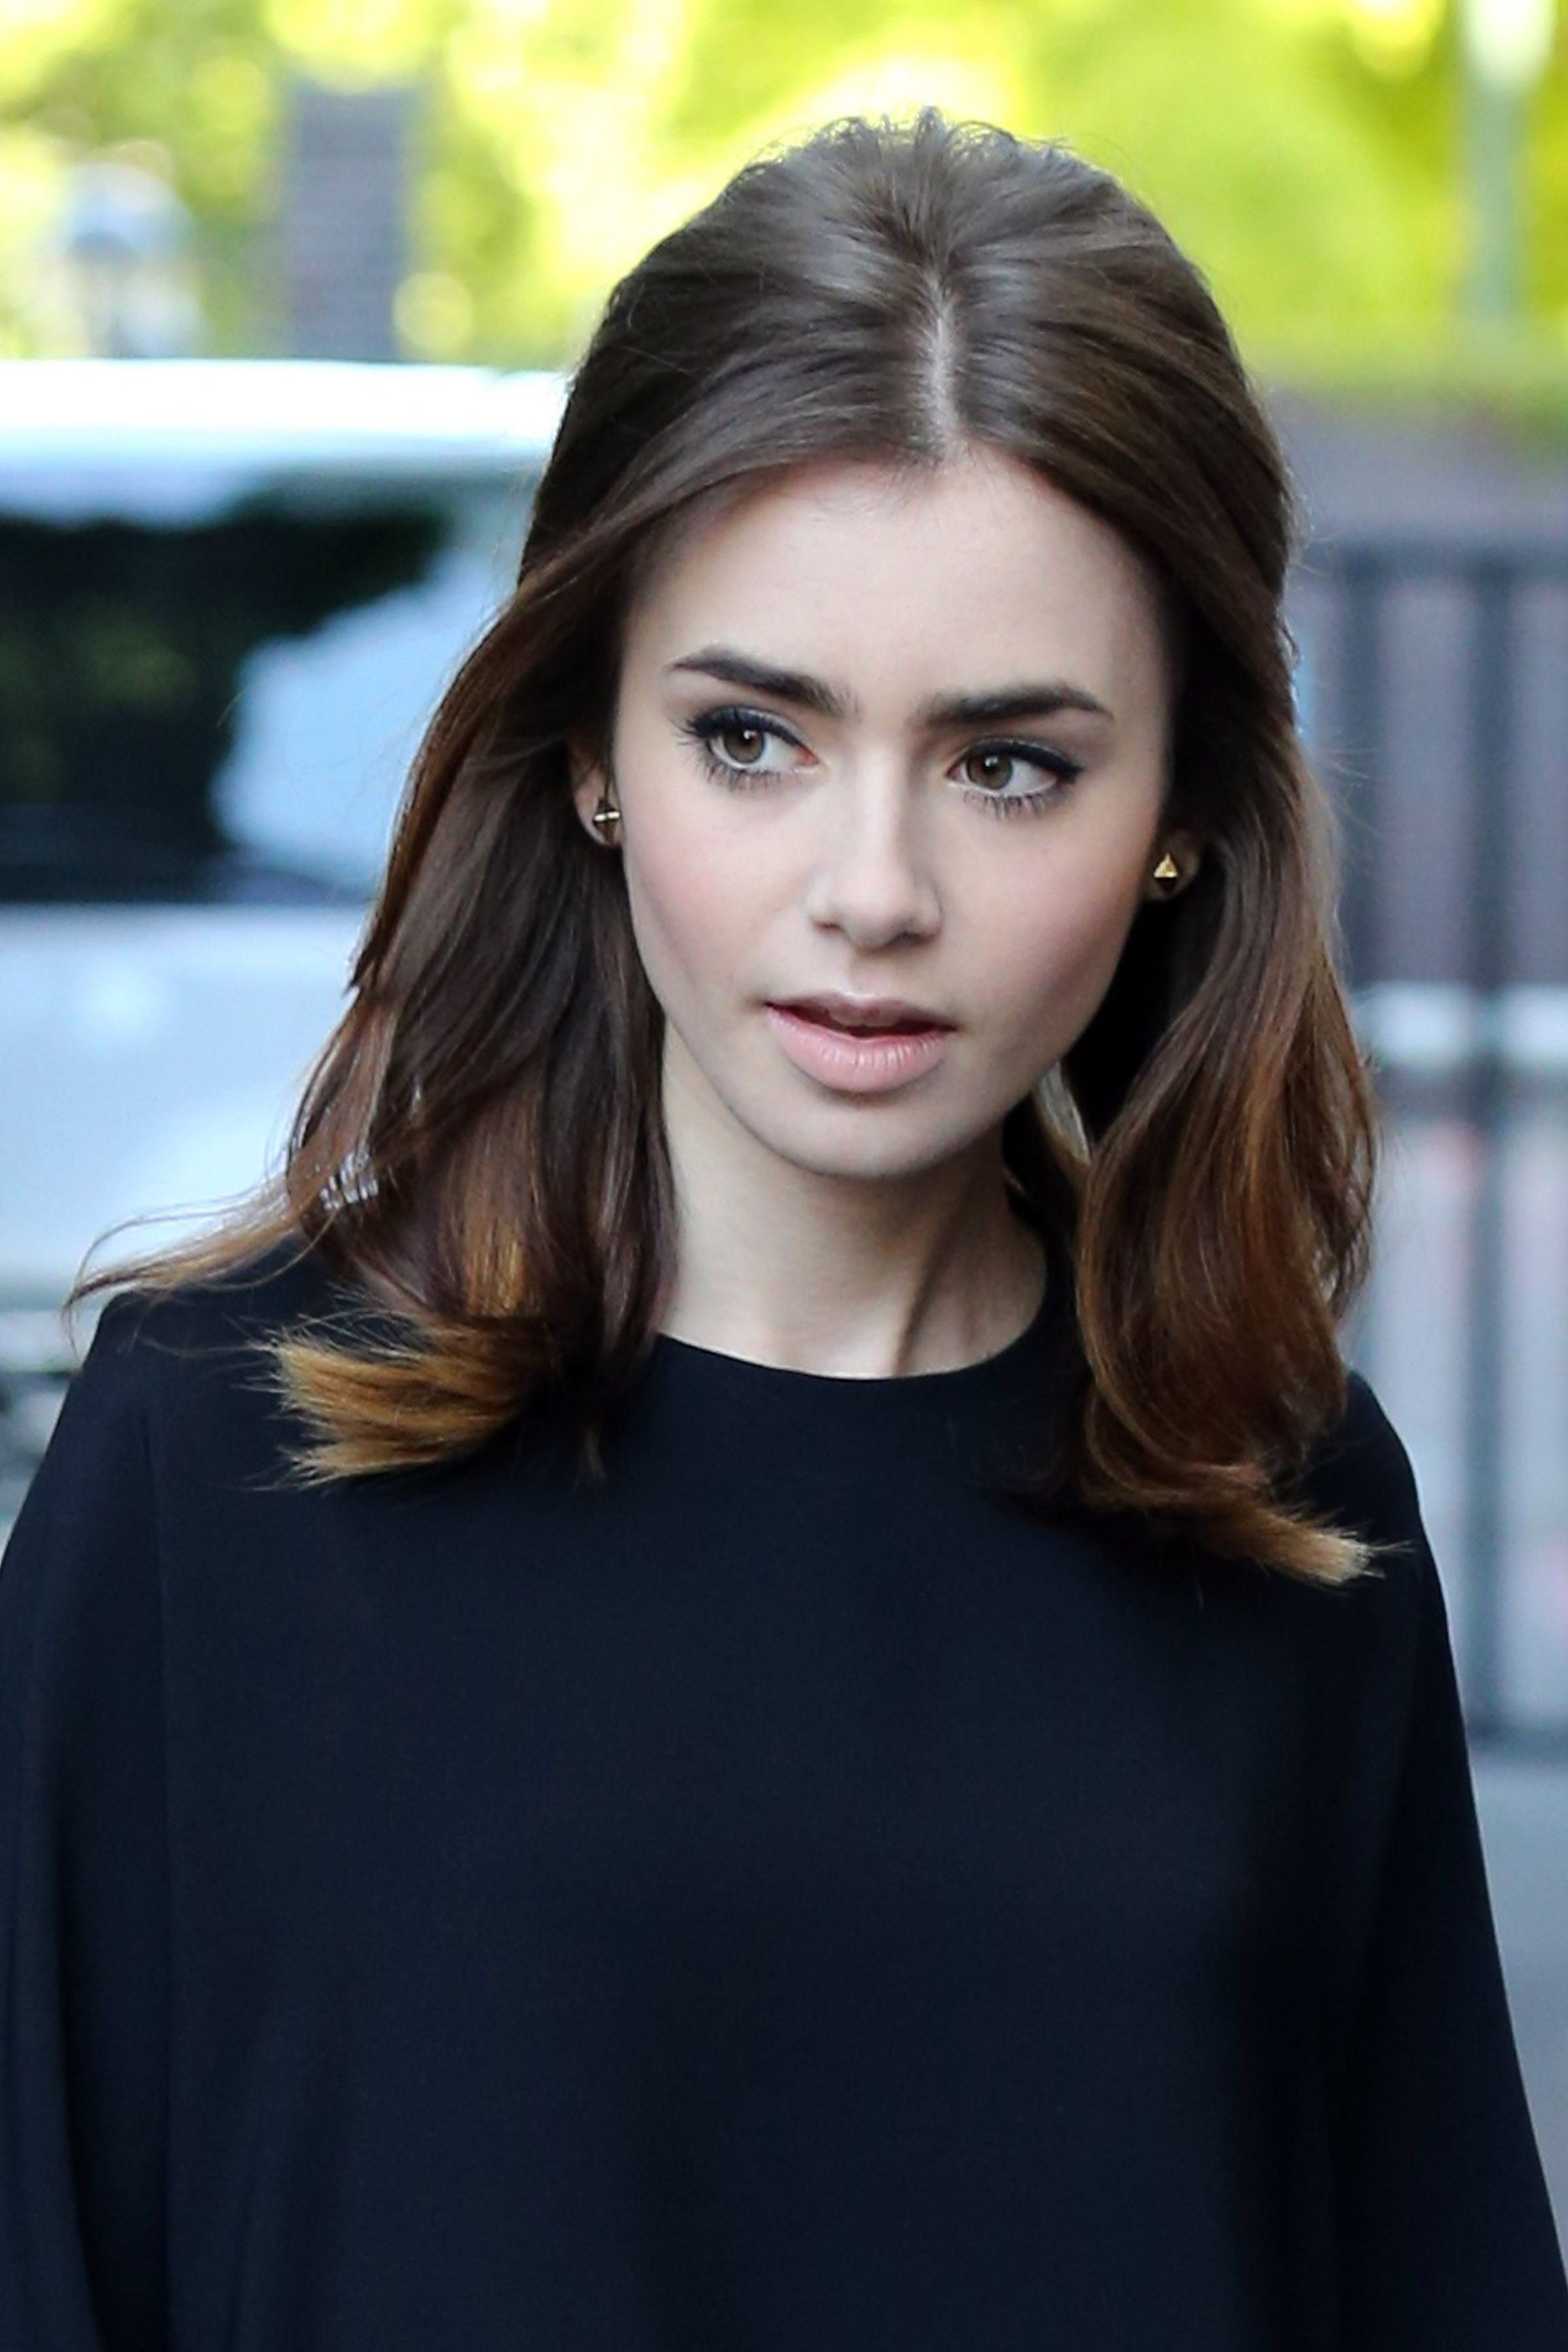 Forum on this topic: Lily Collins' Hairstylist: I Know She Can , lily-collins-hairstylist-i-know-she-can/